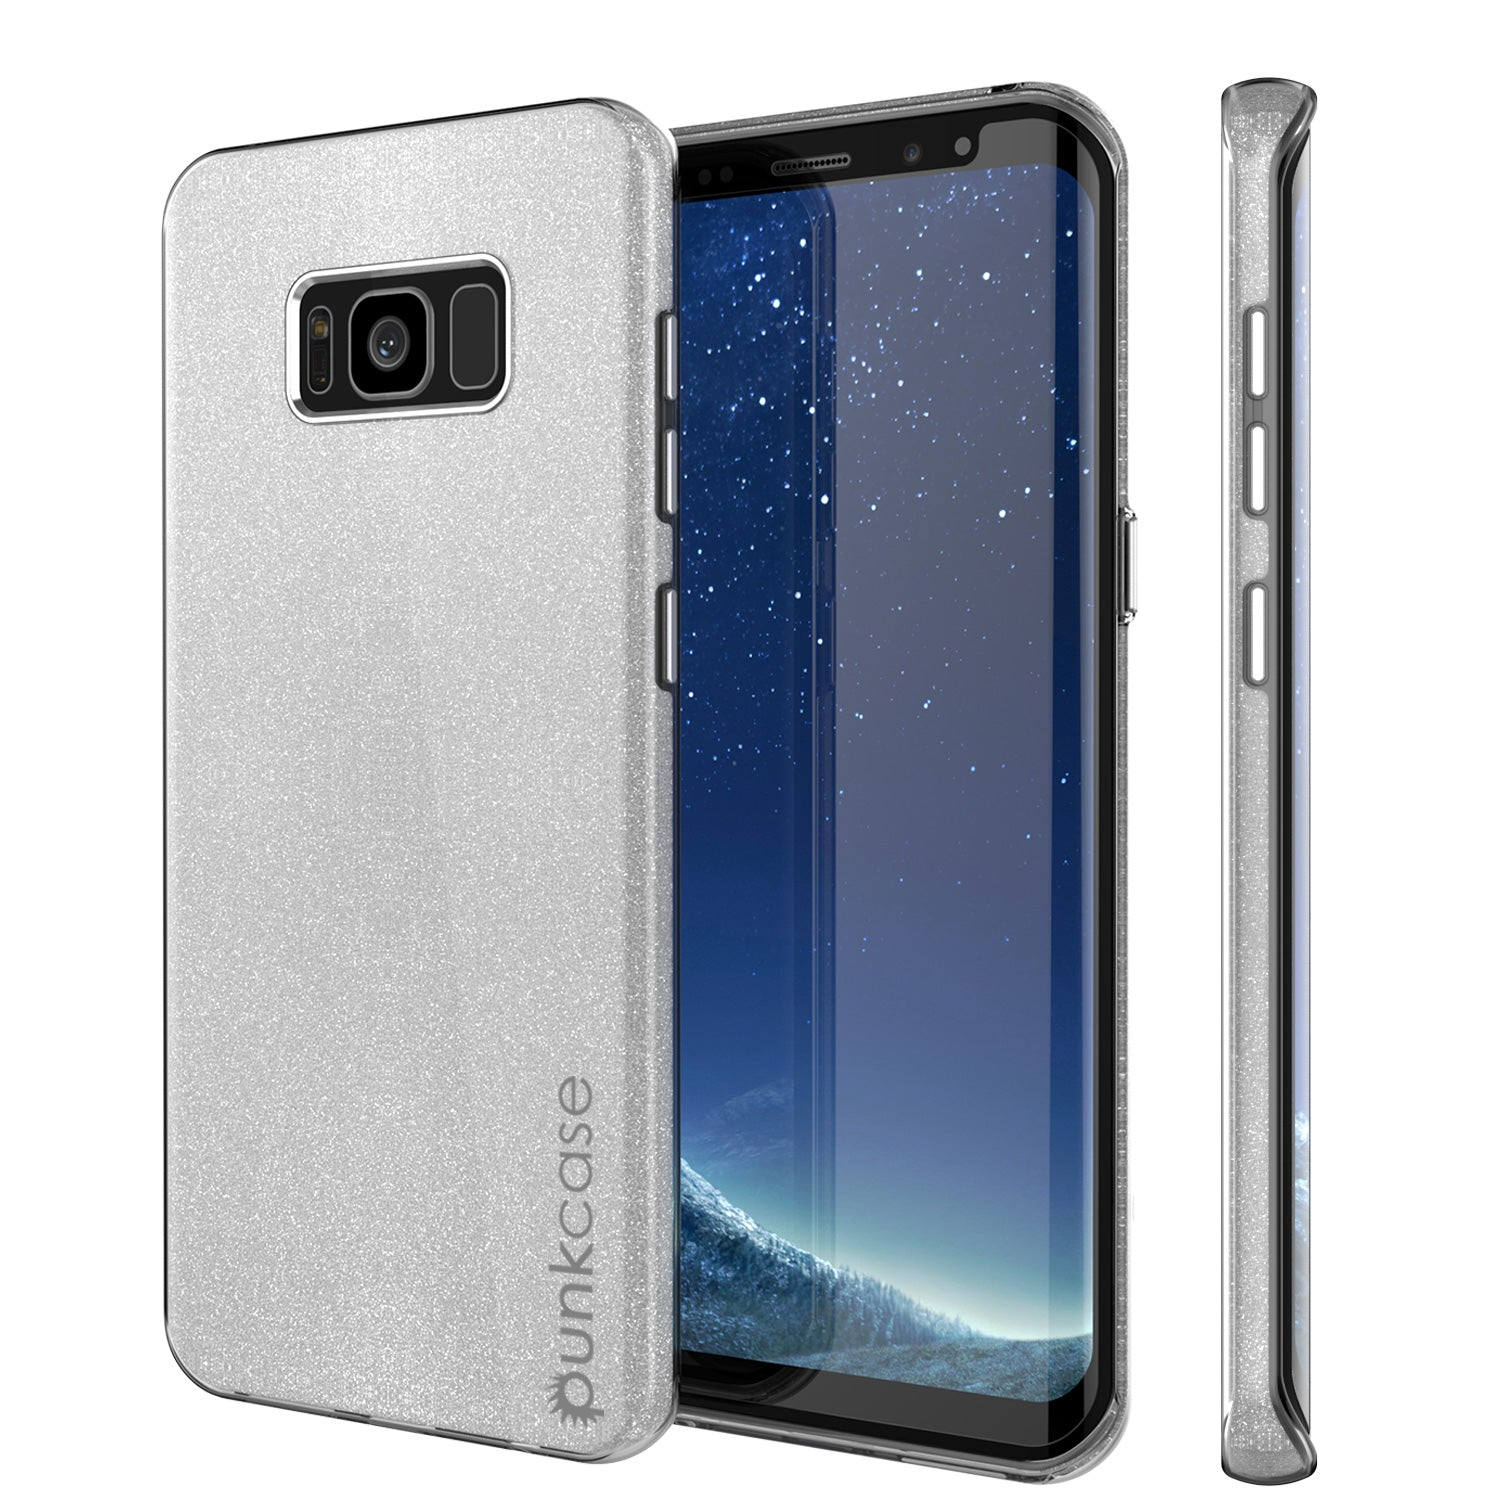 Galaxy S8 Case, Punkcase Galactic 2.0 Series Ultra Slim Protective Armor TPU Cover w/ PunkShield Screen Protector [Silver]